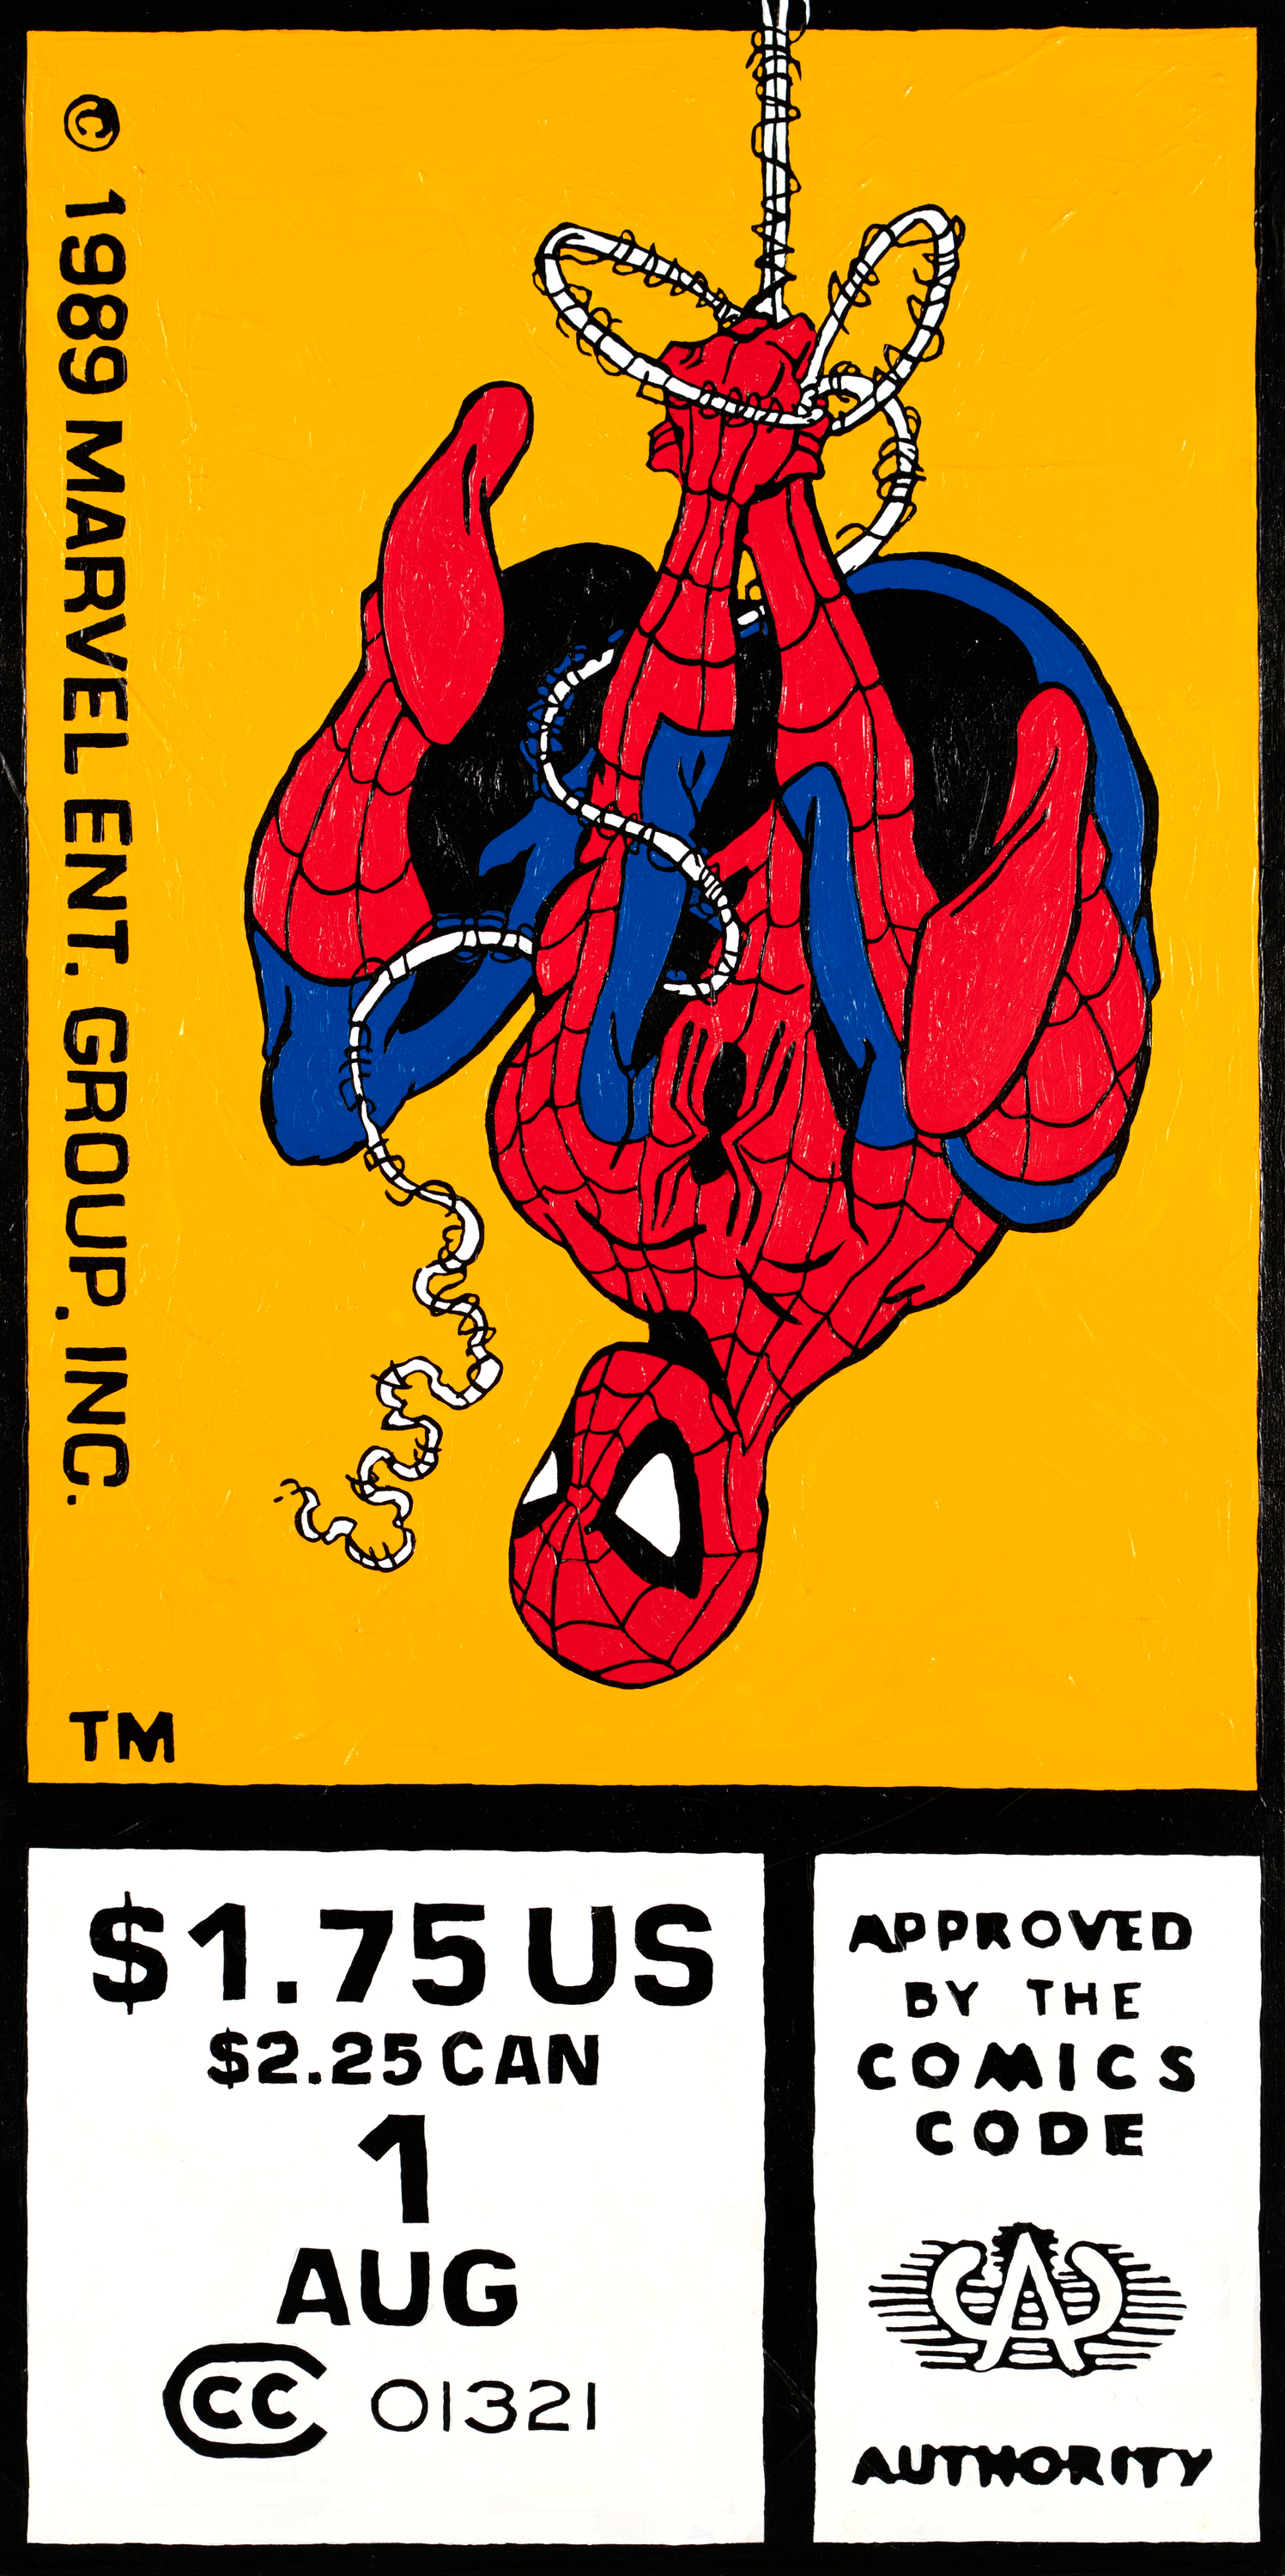 Spiderman1 18x36 2020 toddmonk bhsnvi